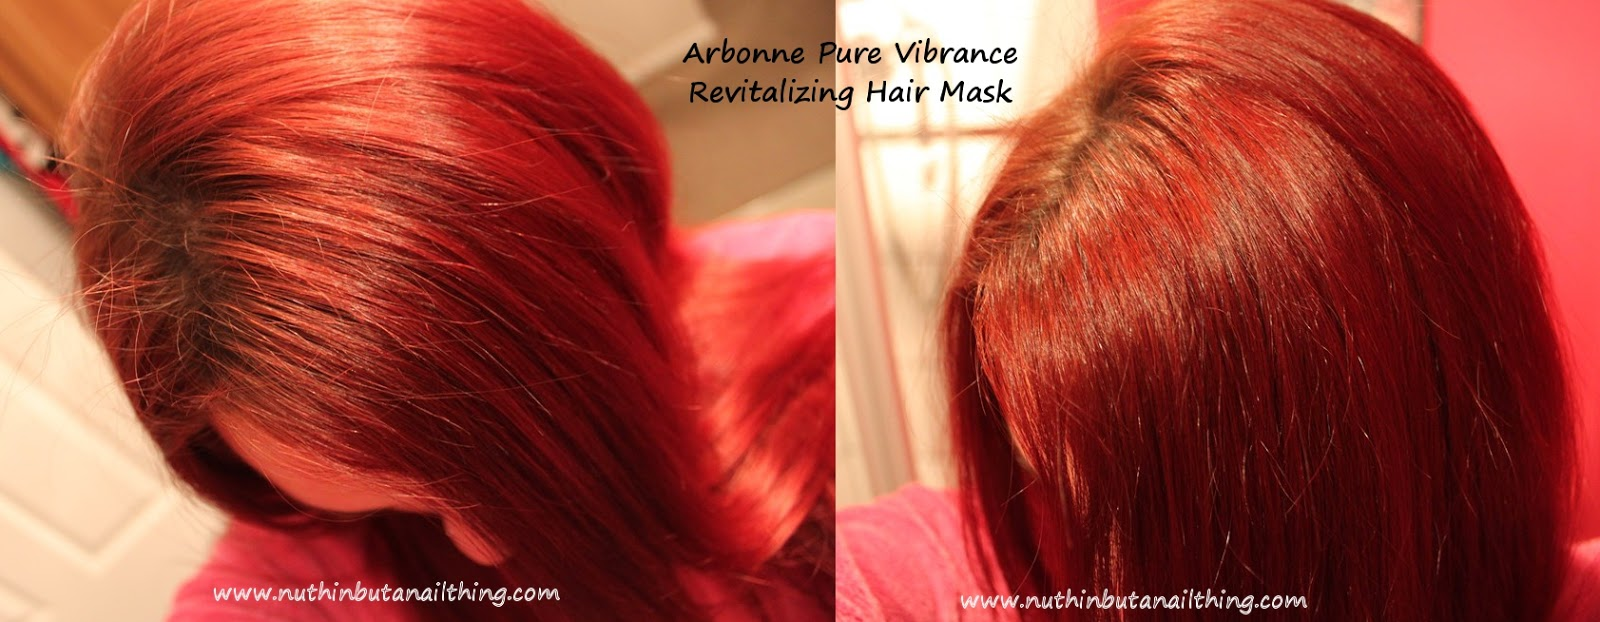 coloured hair shampoo review Arbonne - Pure Vibrance - Shampoo and Conditioner